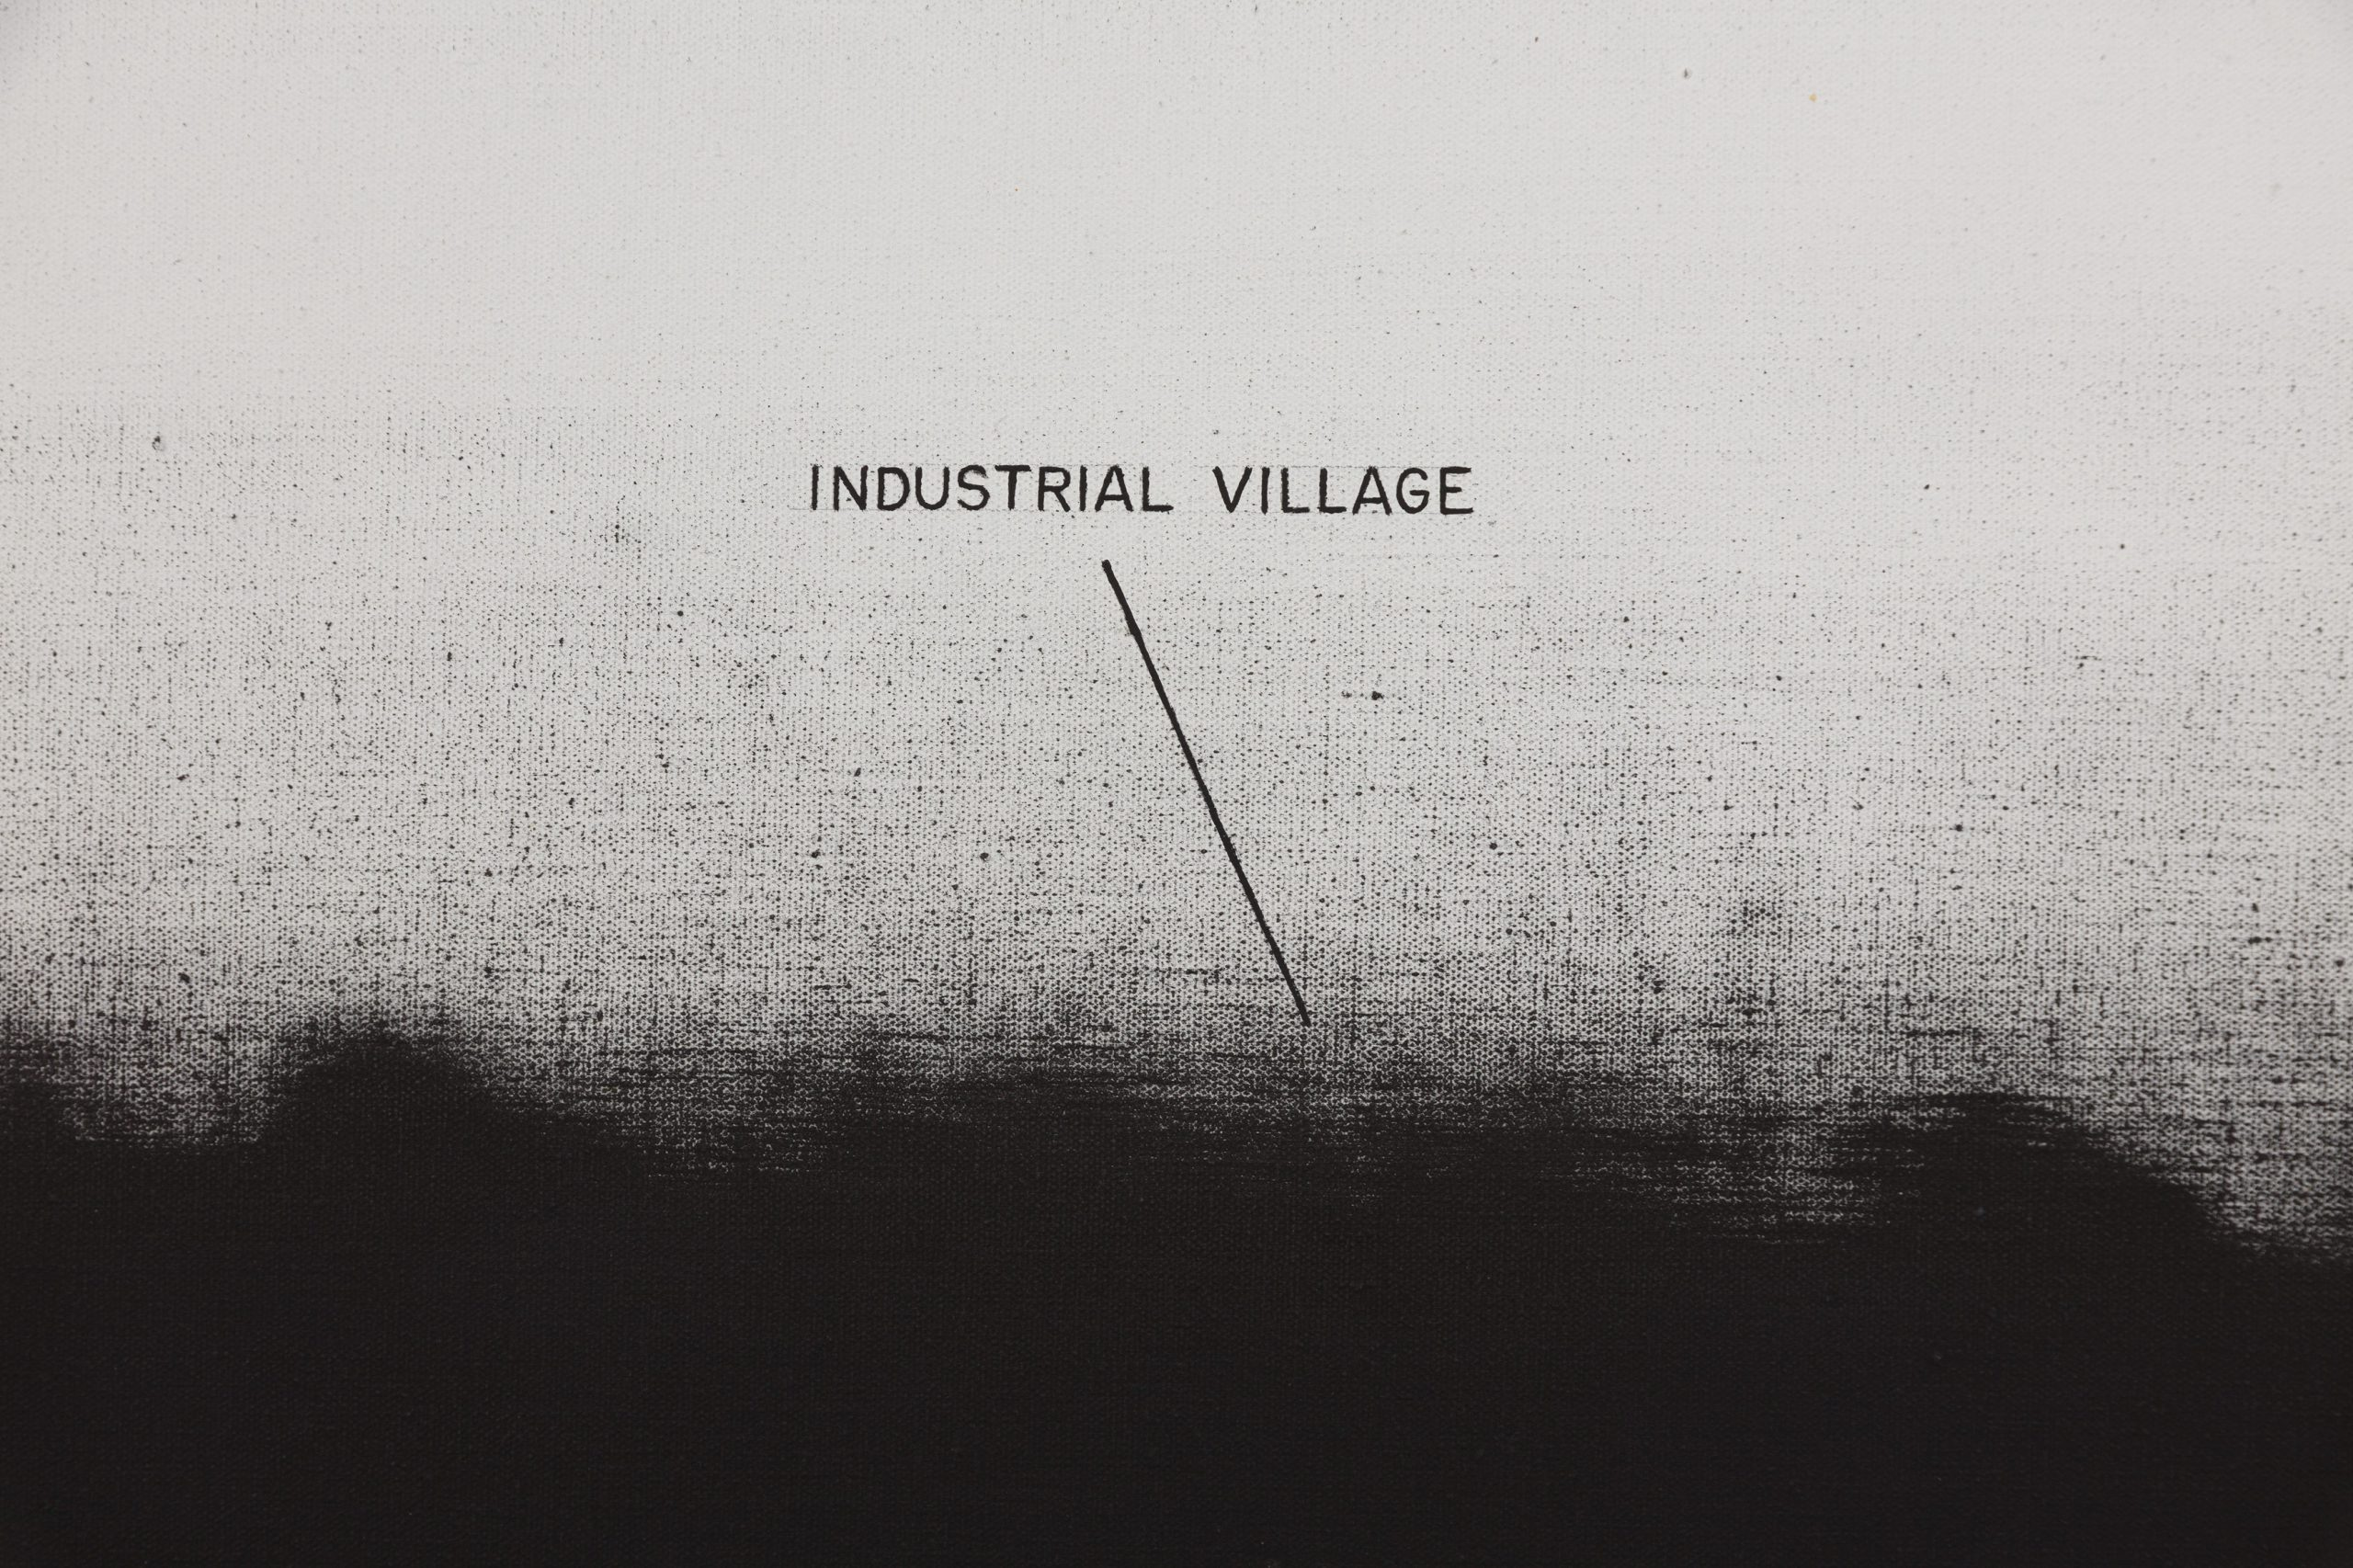 ruscha-Industrial-Village-and-Its-Hill-ER13-2-C